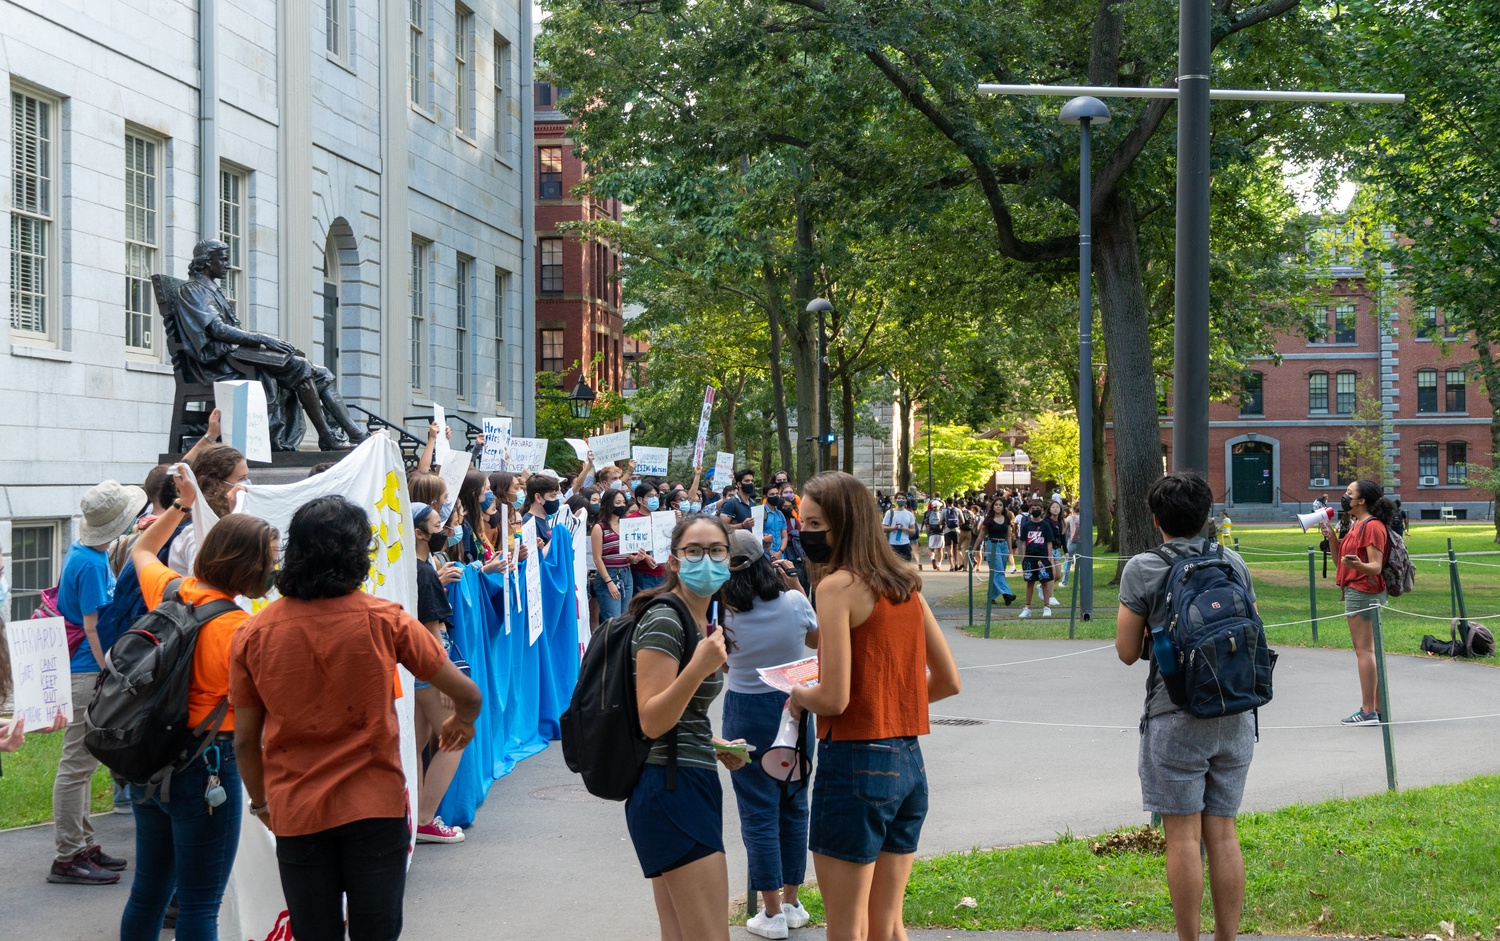 Students gathered for a rally in front of University Hall Tuesday demanding Harvard to divest from fossil fuels.